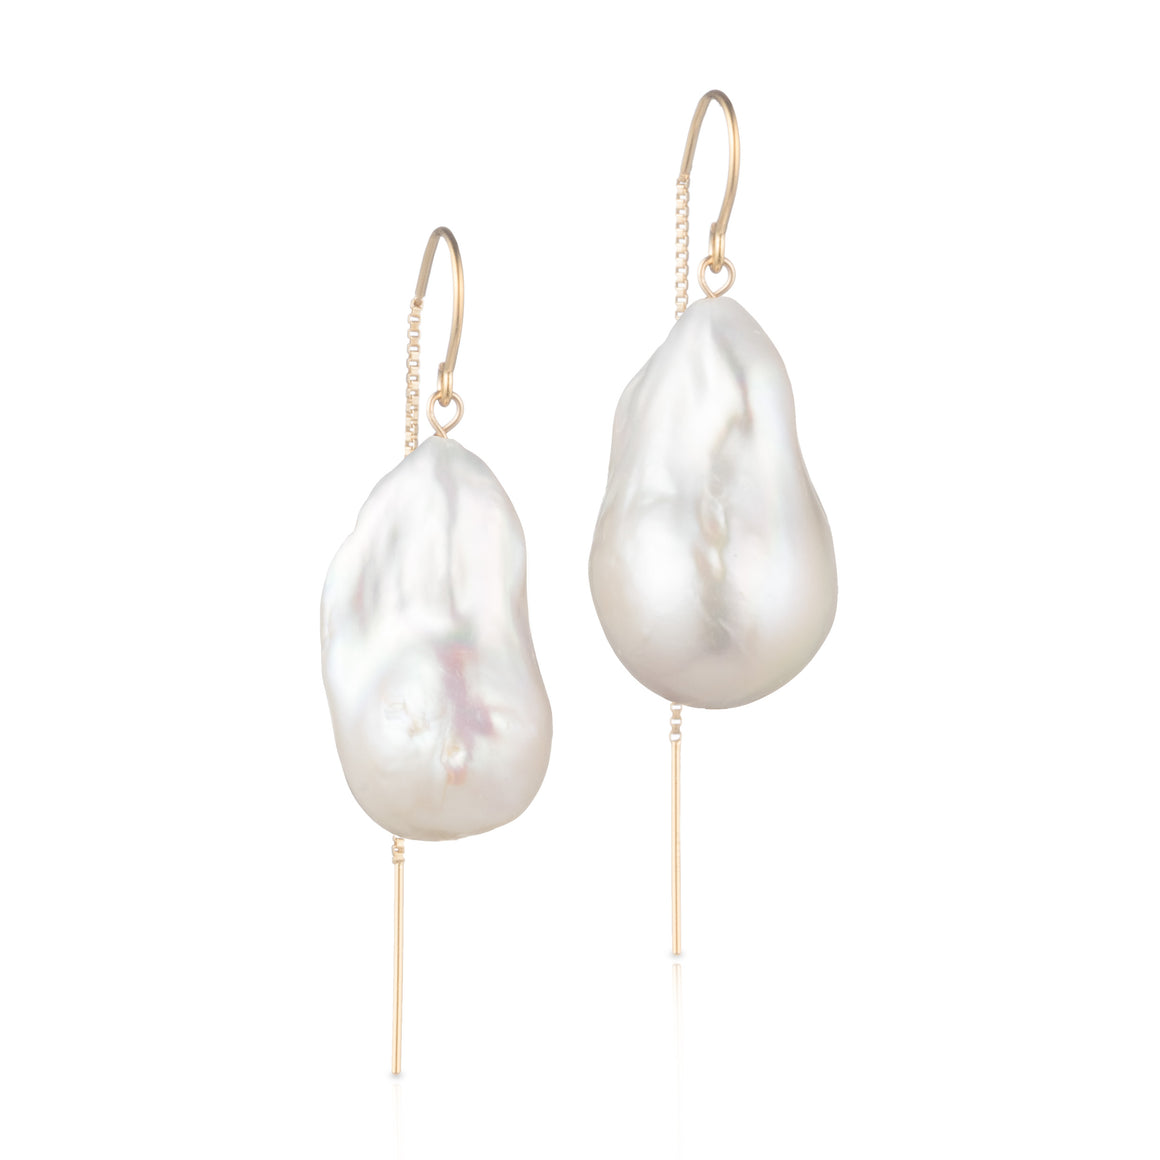 14 Karat Gold Filled Baroque Freshwater Pearl Drop Earrings